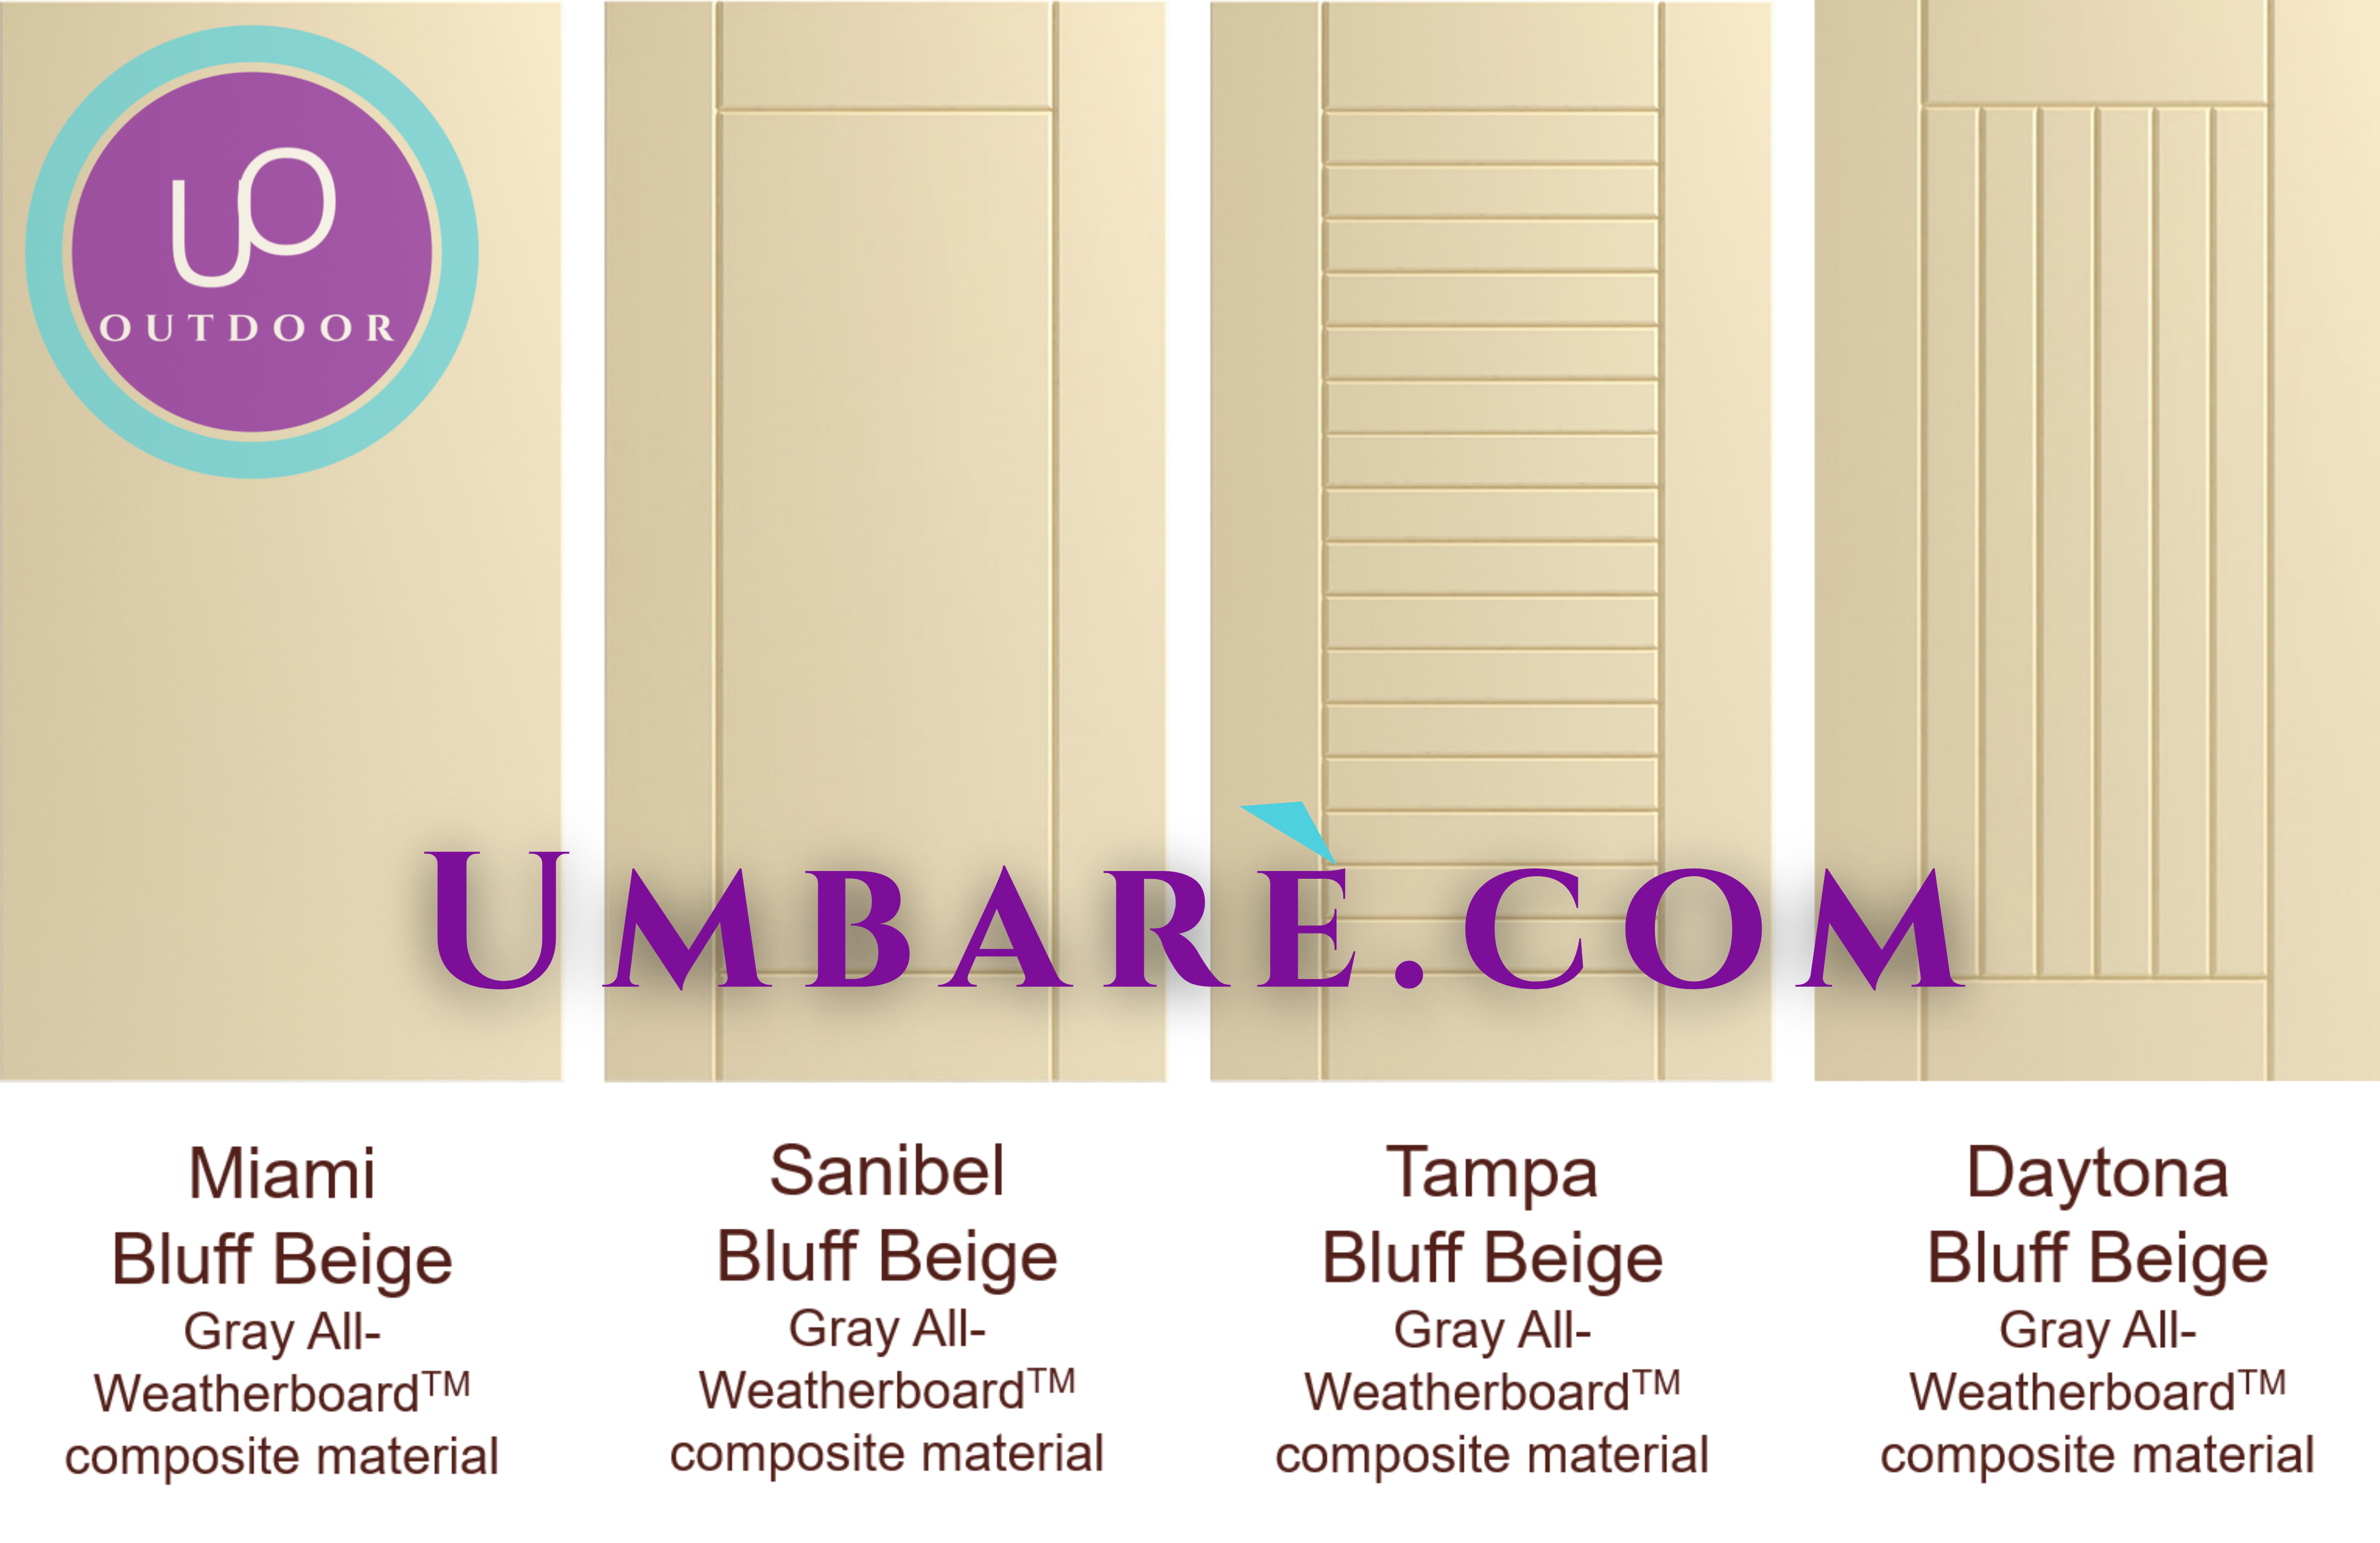 Outdoor Cabinets Sarasota Outdoor Cabinets Lakewood Ranch Outdoor Cabinets Longboat Key Outdoor Cabinets Venice Outdoor Cabinets Siesta Key